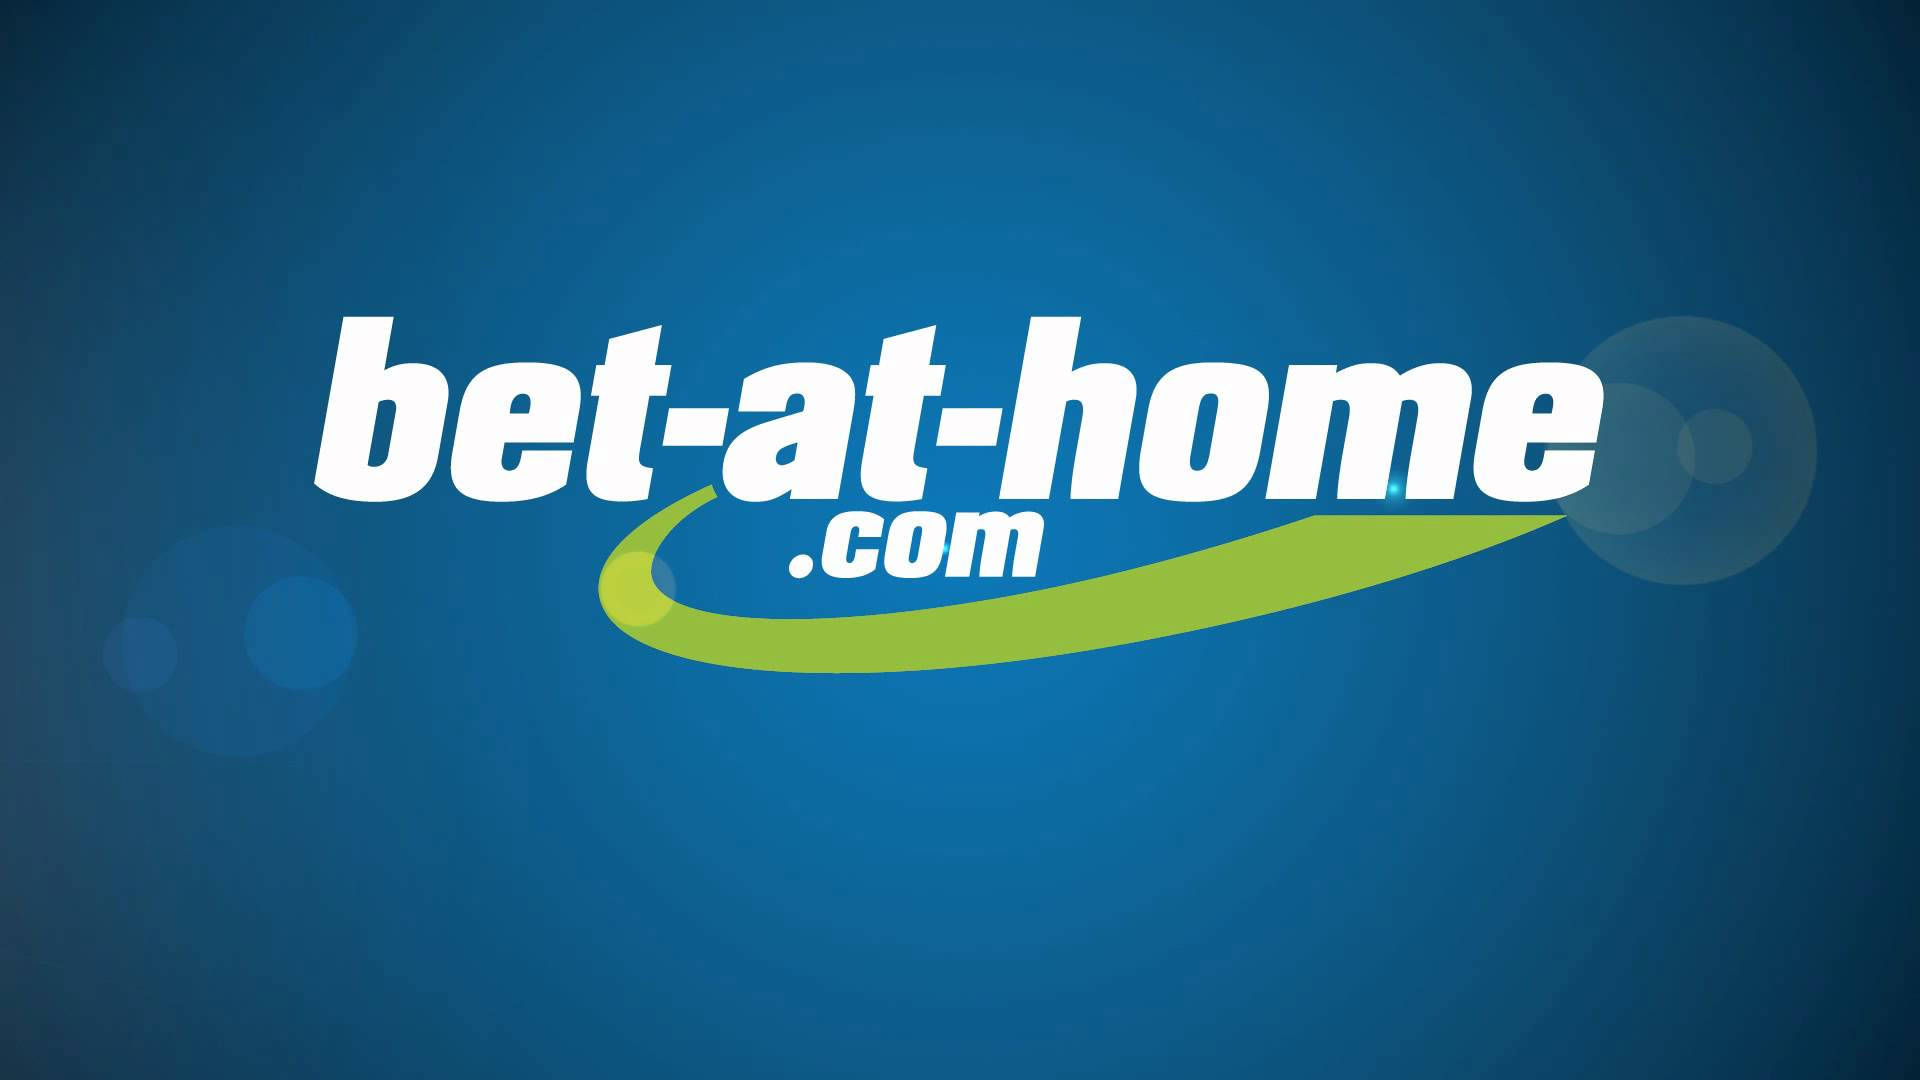 bet-at-home